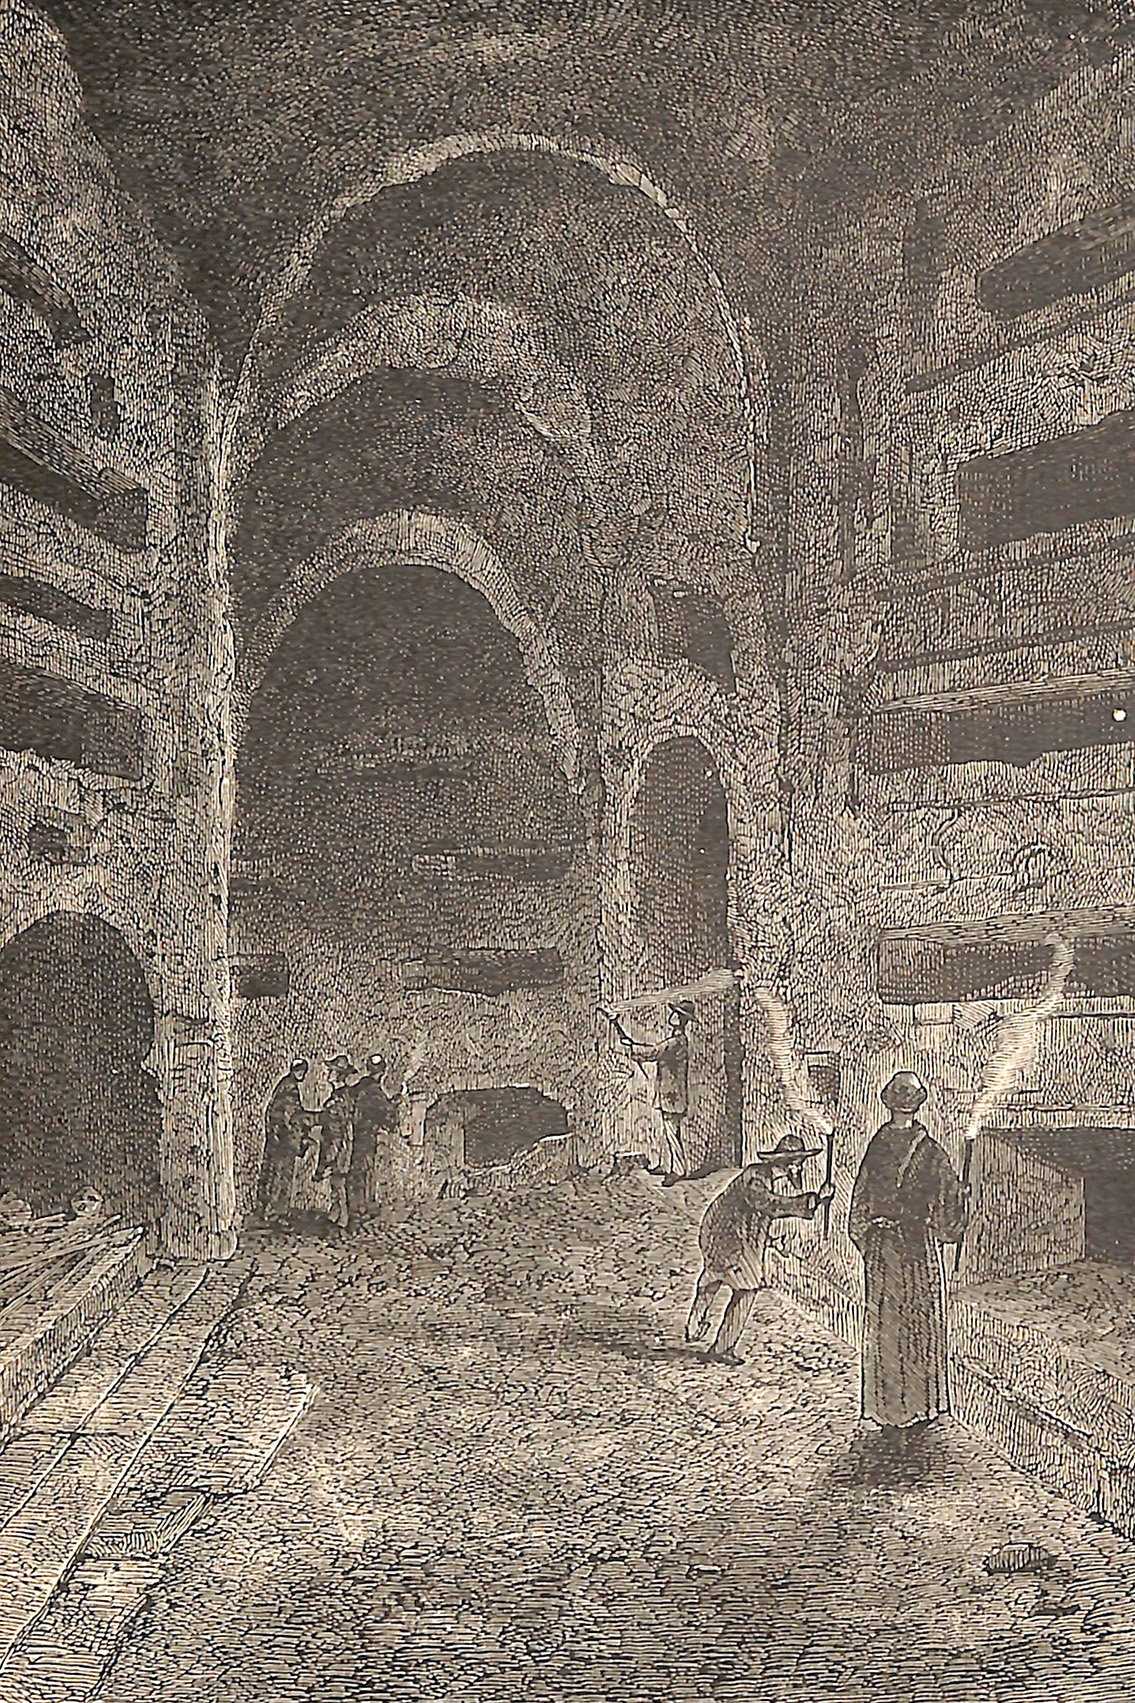 Inside view of Catacombs